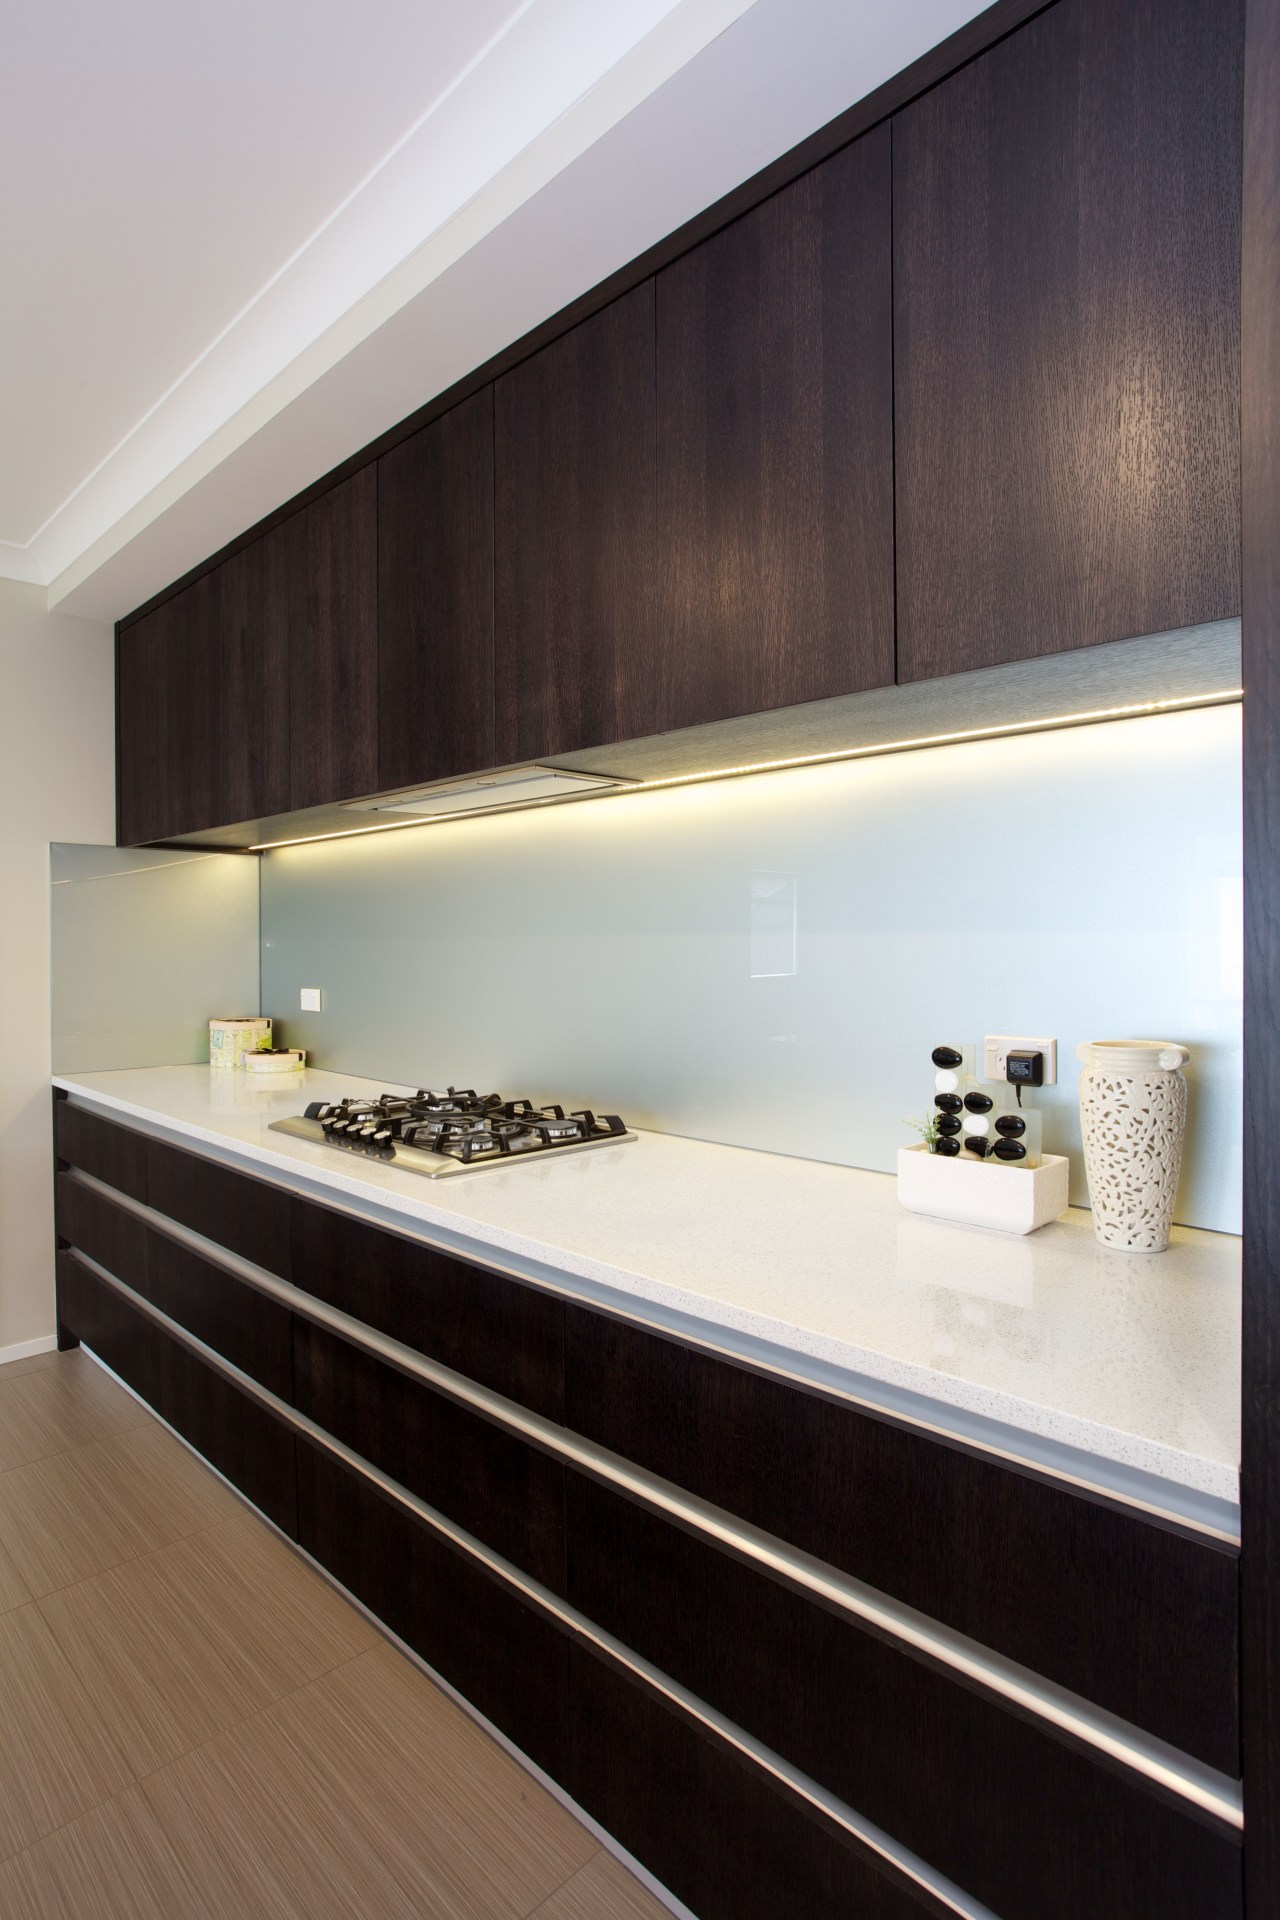 Dark-stained timber veneer cabinets line the rear wall architecture, floor, flooring, interior design, kitchen, room, wall, wood, gray, black